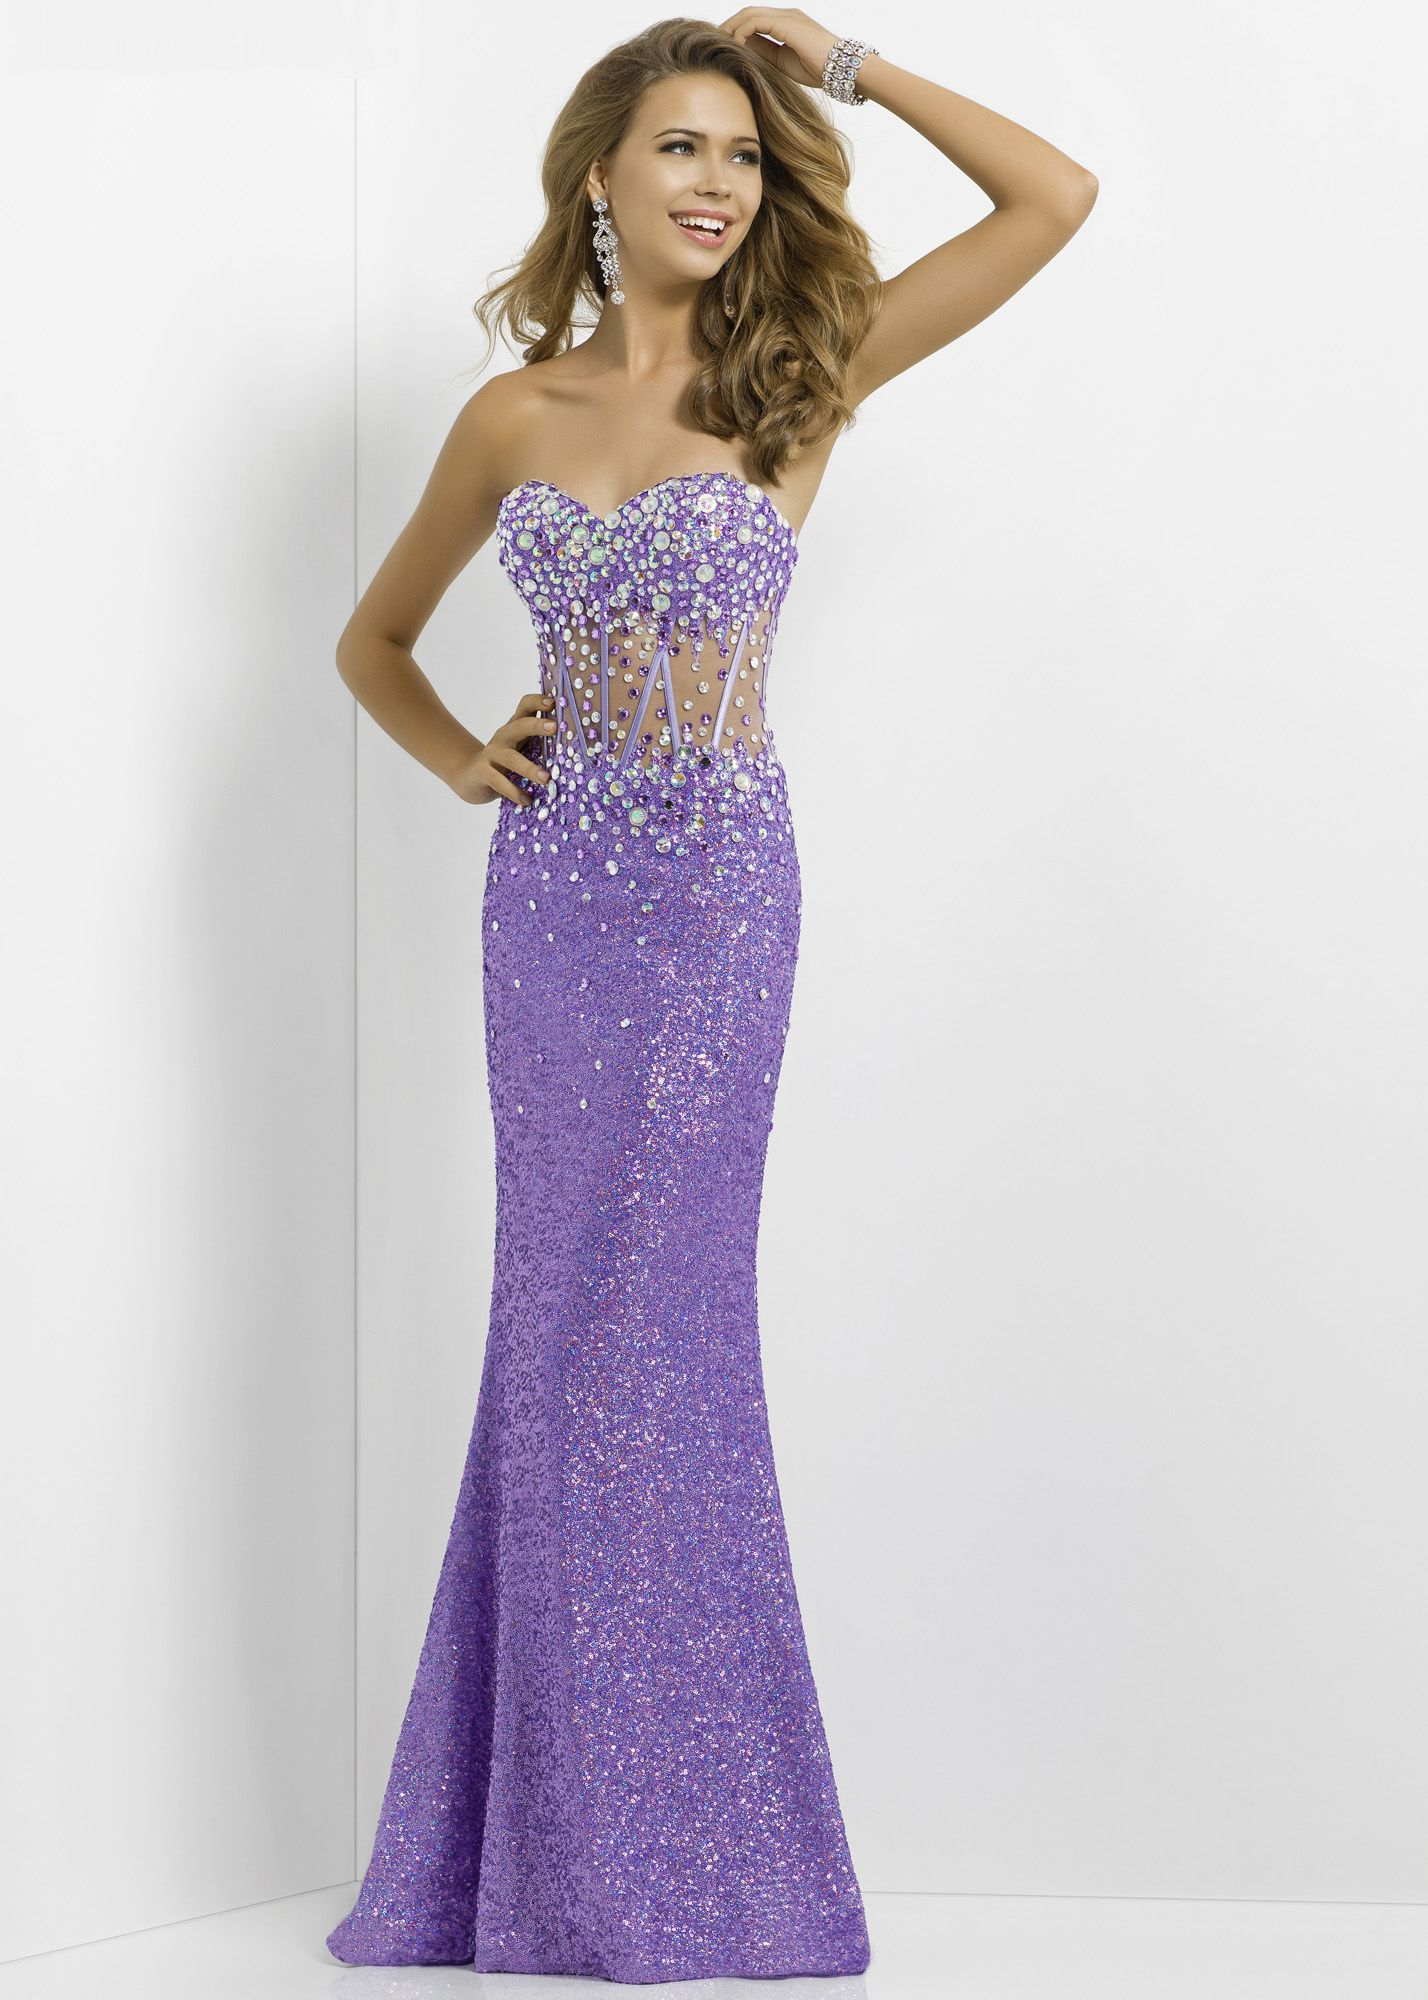 Online prom dresses hairstyles - Best dresses collection